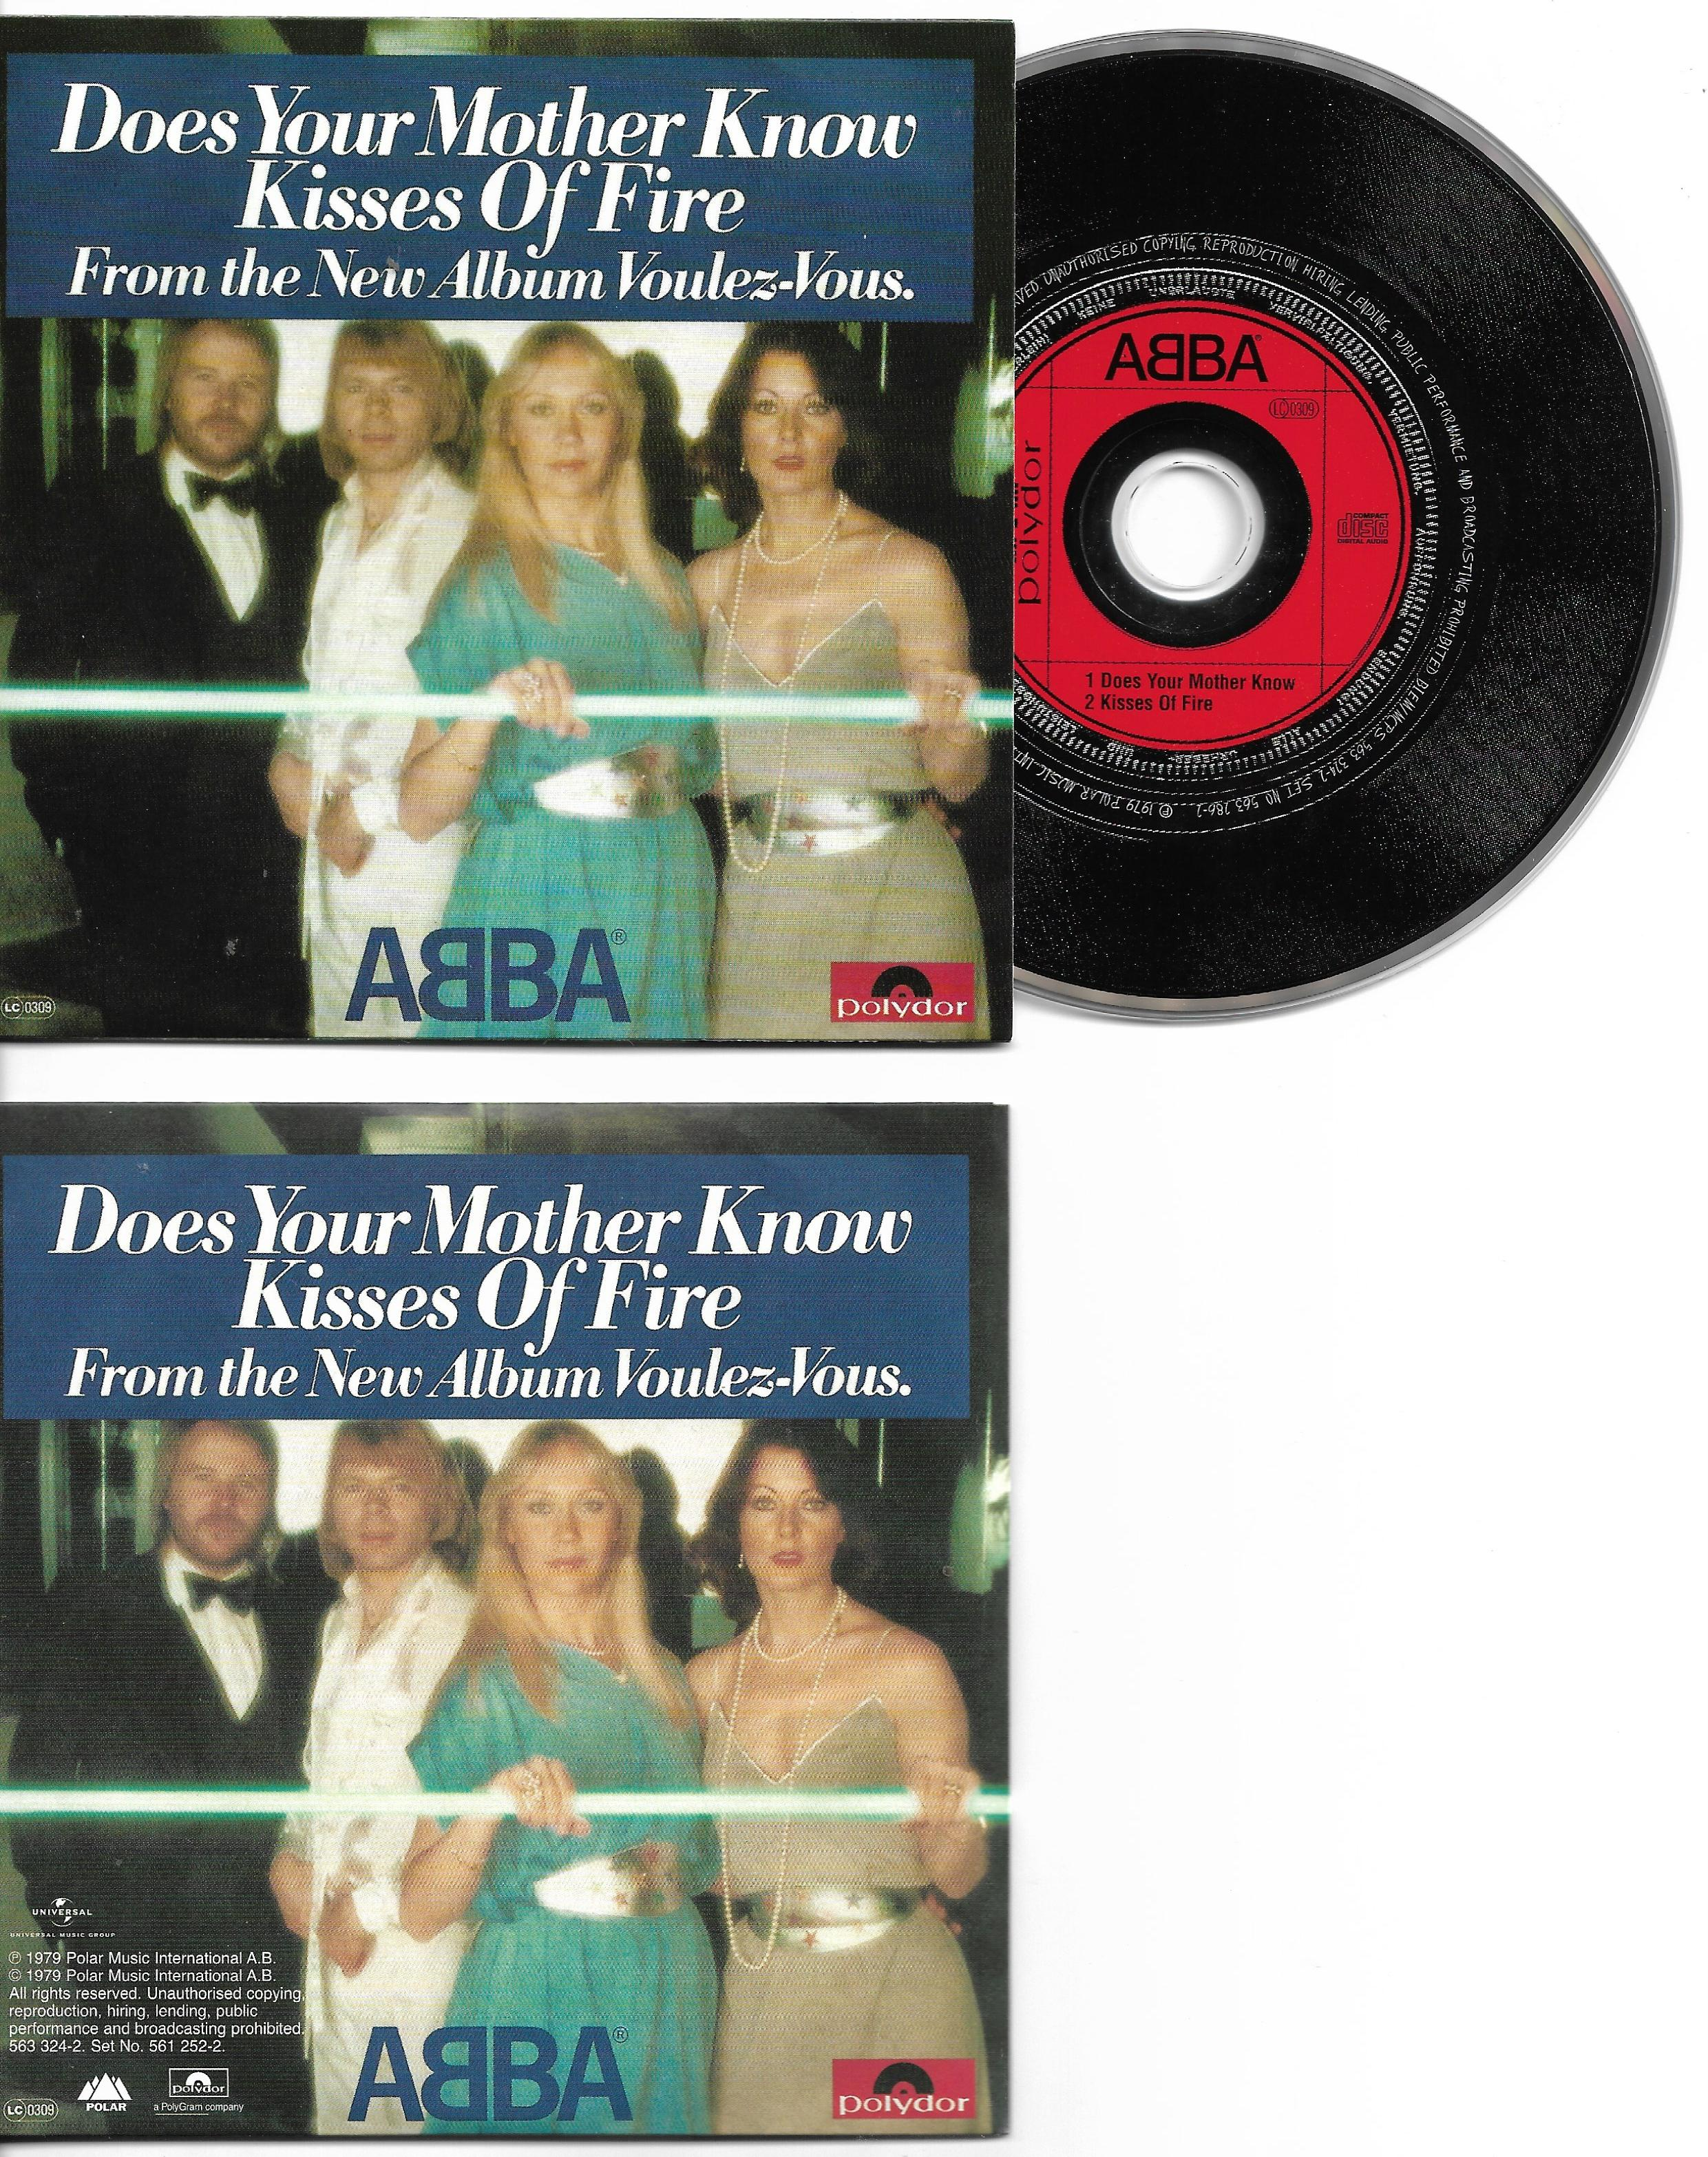 ABBA - Does Your Mother Know 2-track Card Sleeve